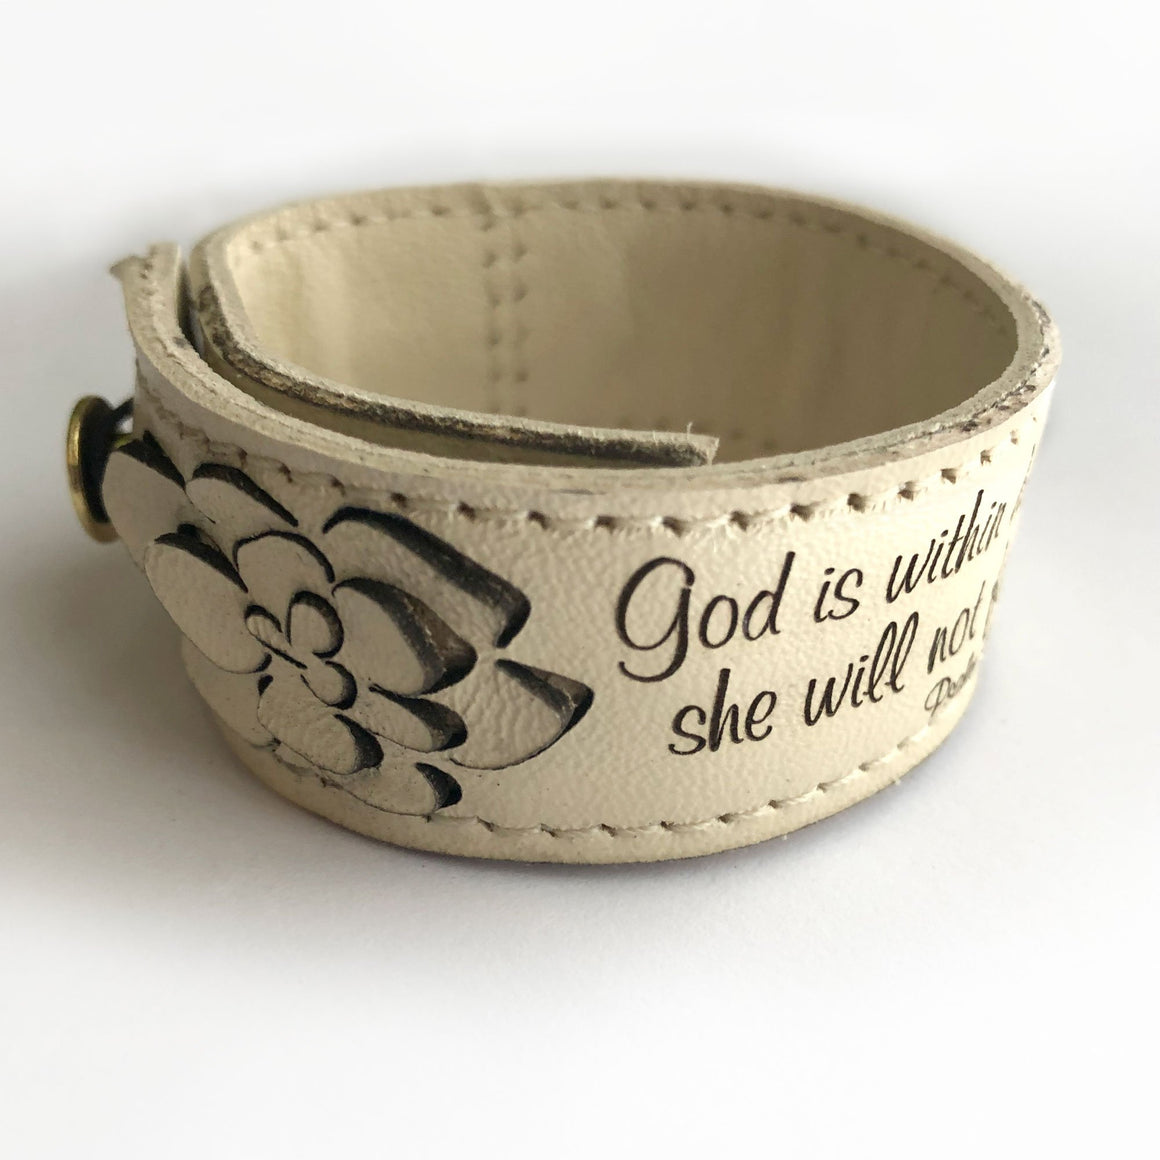 God is within her, she will not fall, Psalm 46:5 - Engraved White Italian Leather Bracelet